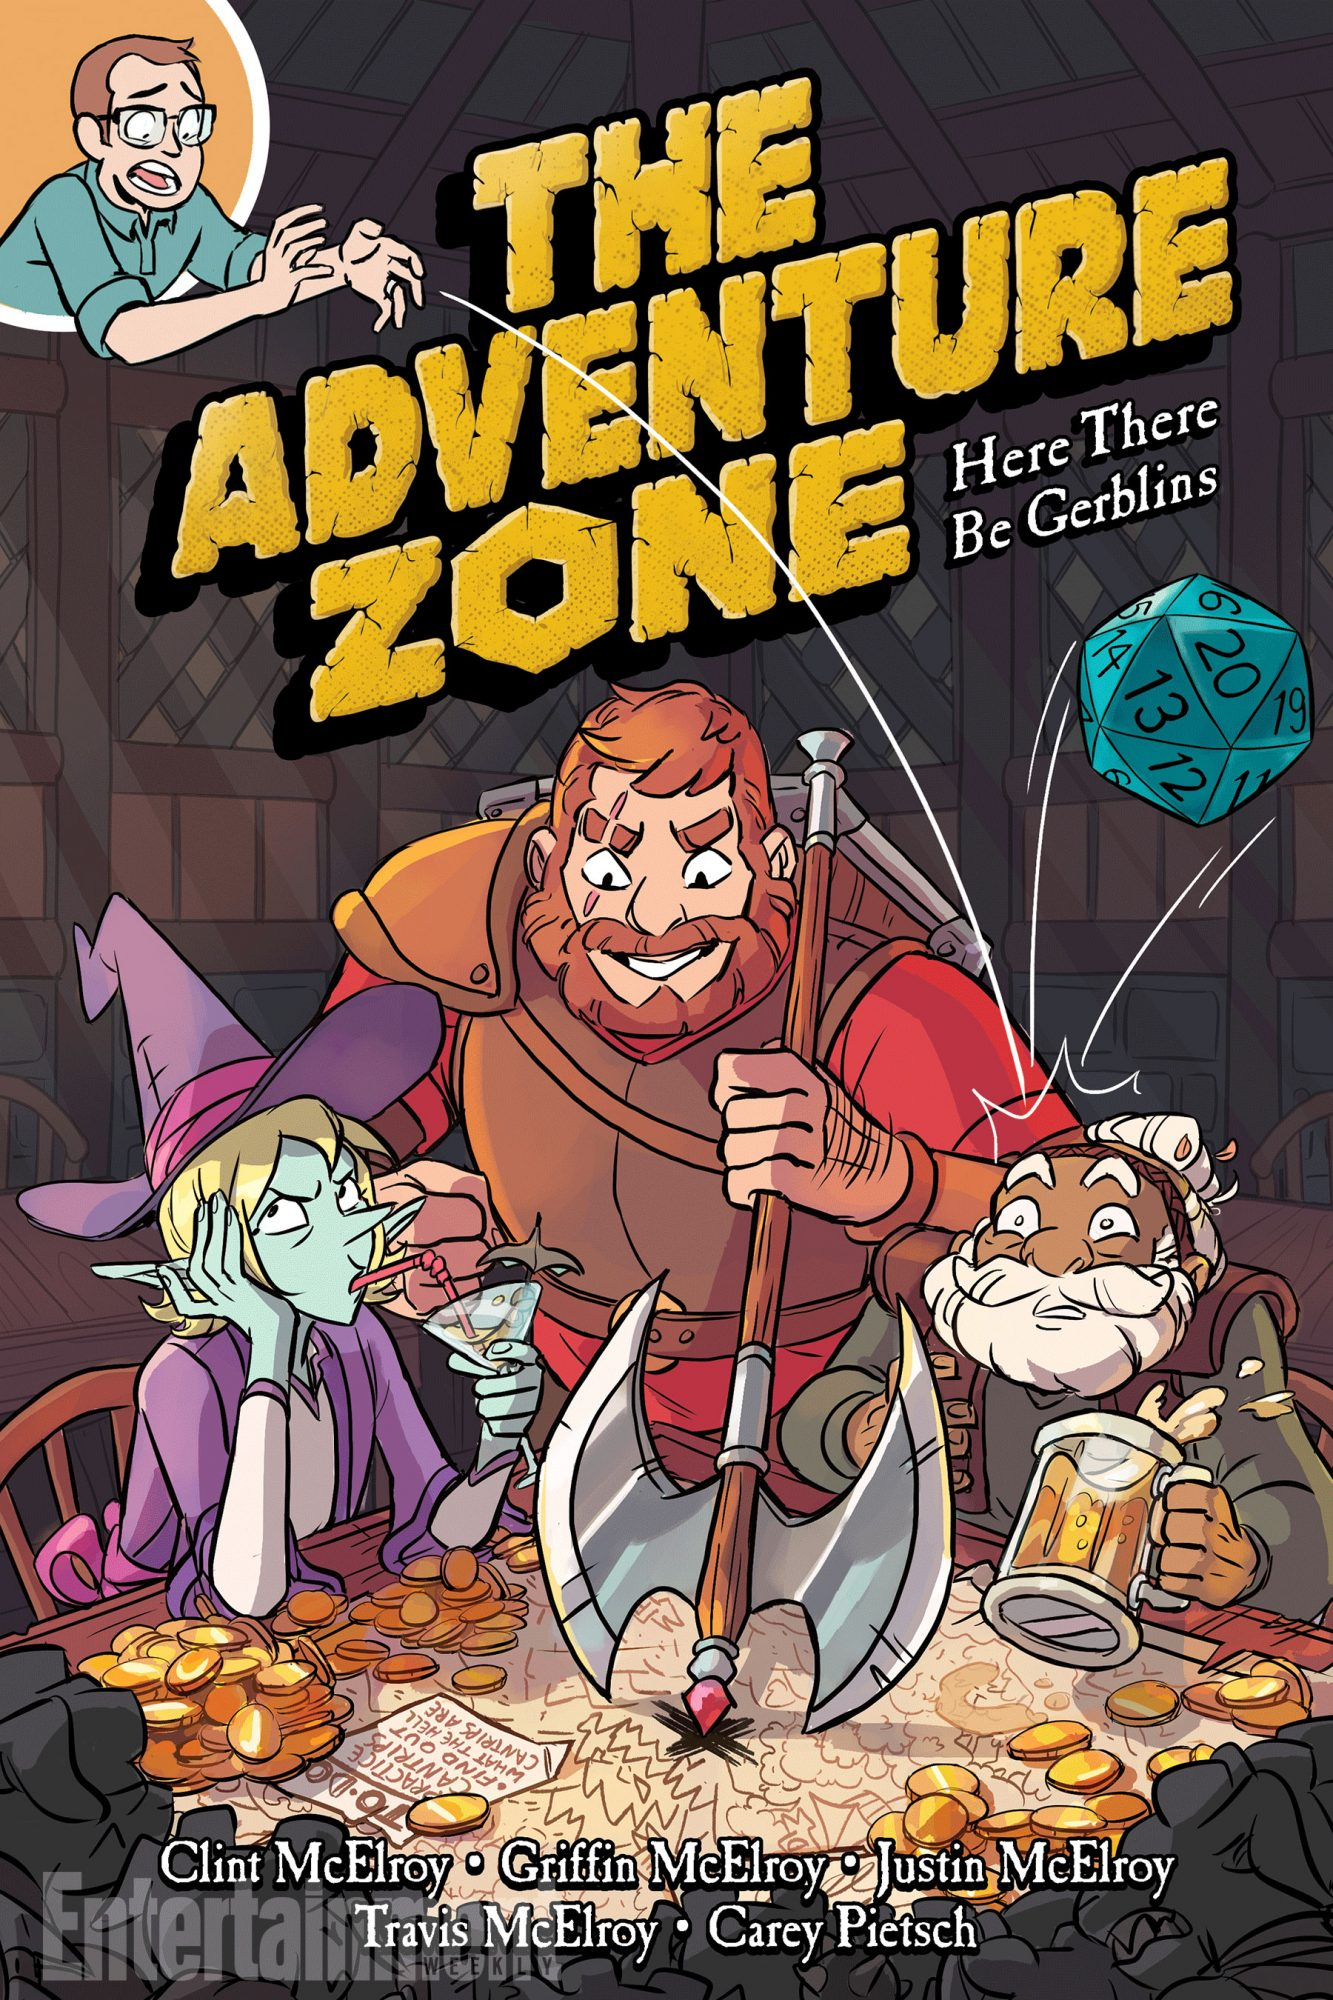 July 17, 2018                       The Adventure Zone: Here Be Gerblins by Clint, Griffin, Justin, and Travis McElroy, and Carey Pietsch